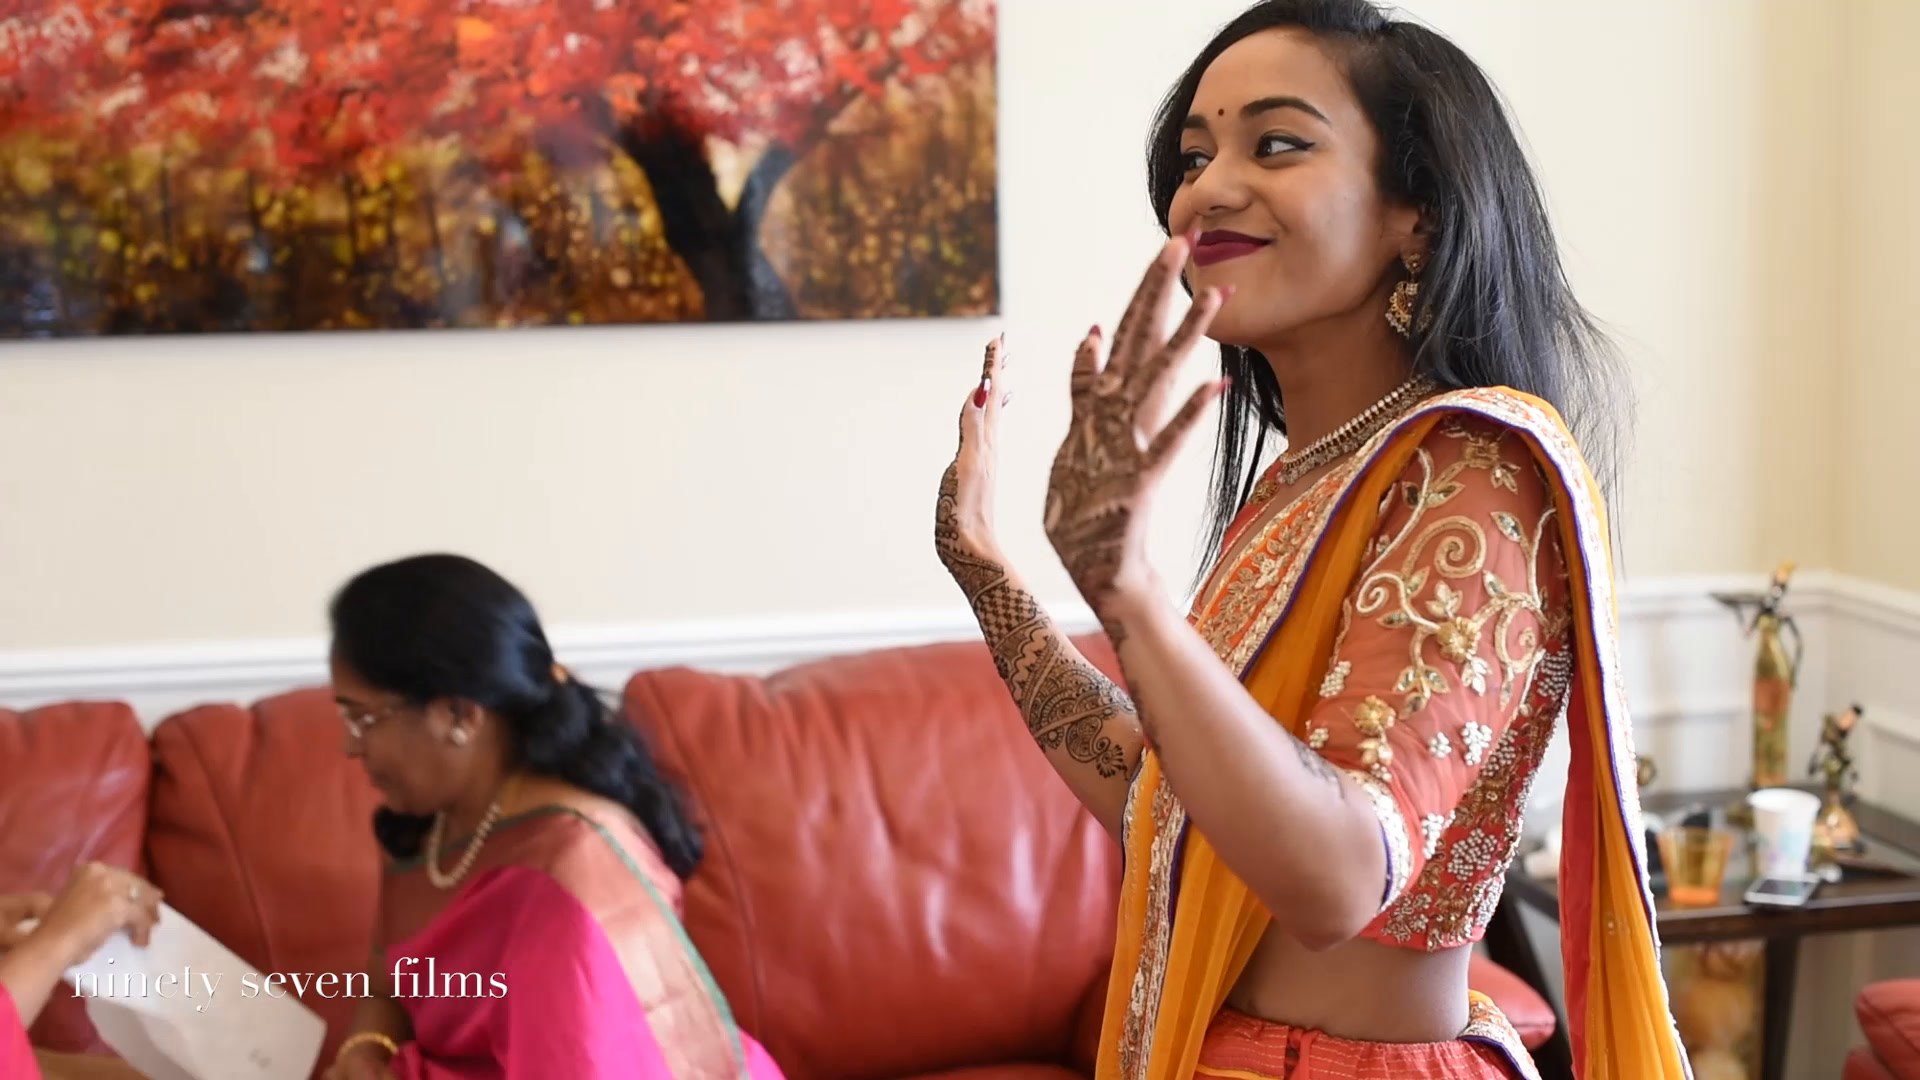 Shilpa + Vishi | Dearborn, Michigan | The Henry Hotel